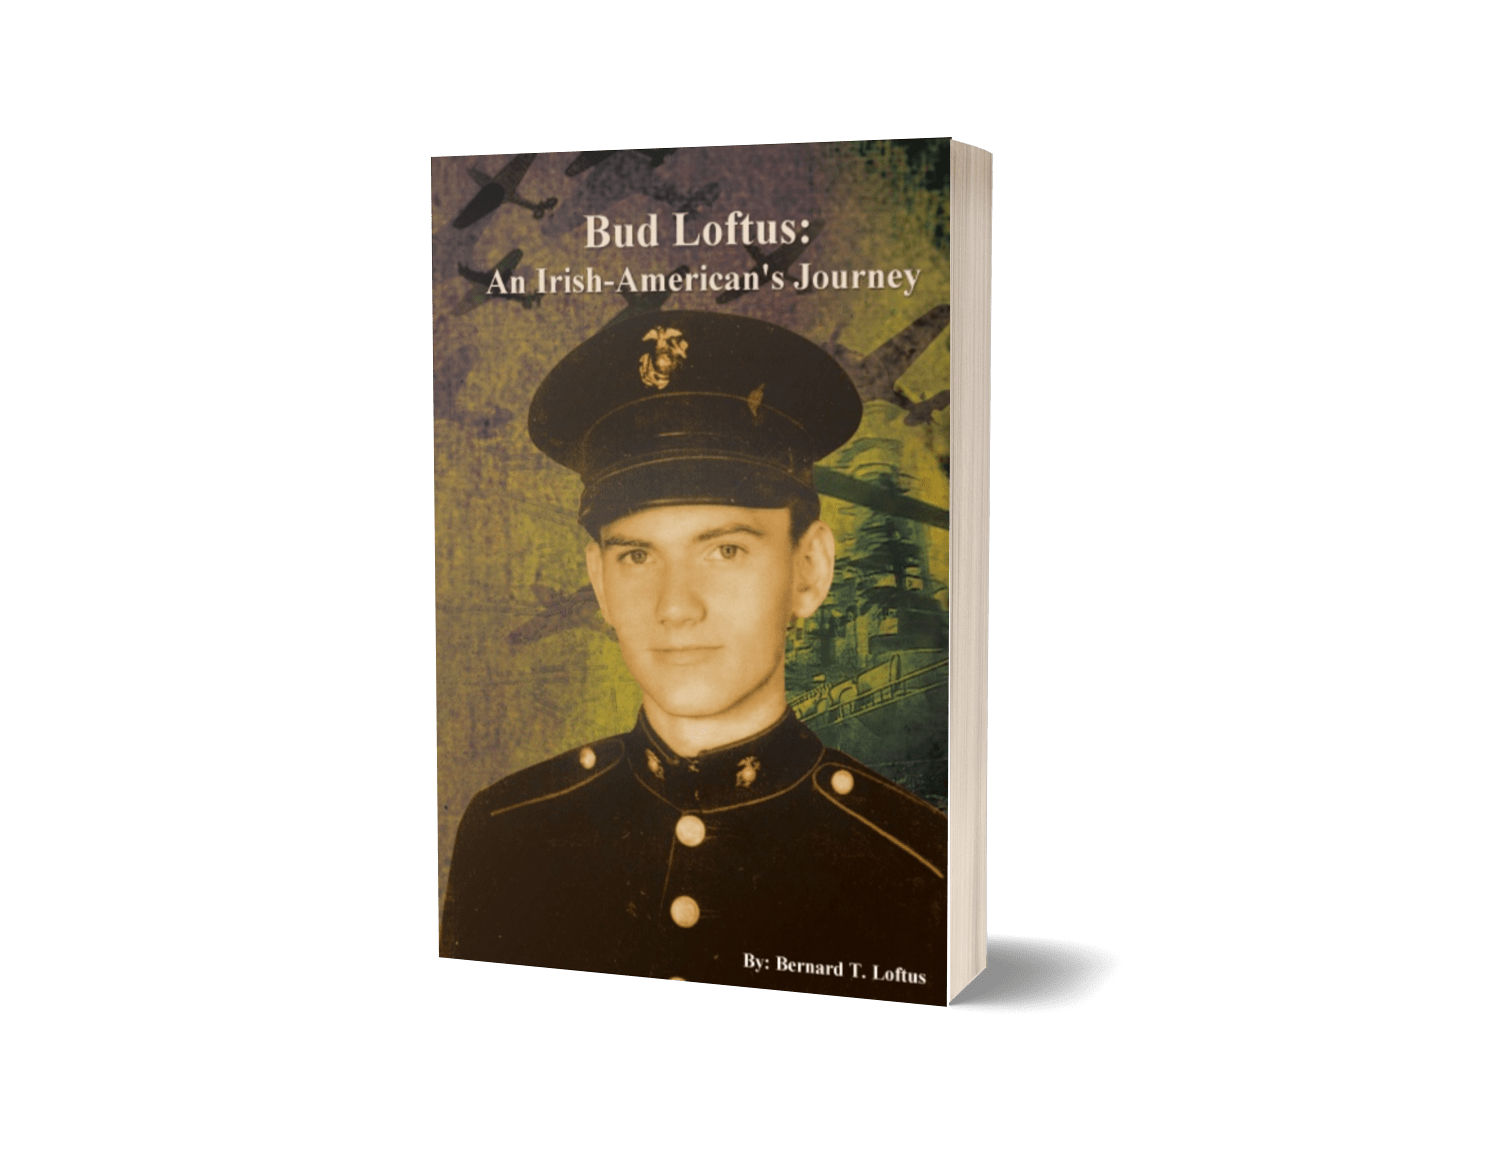 Bud Loftus: An Irish-American's Journey